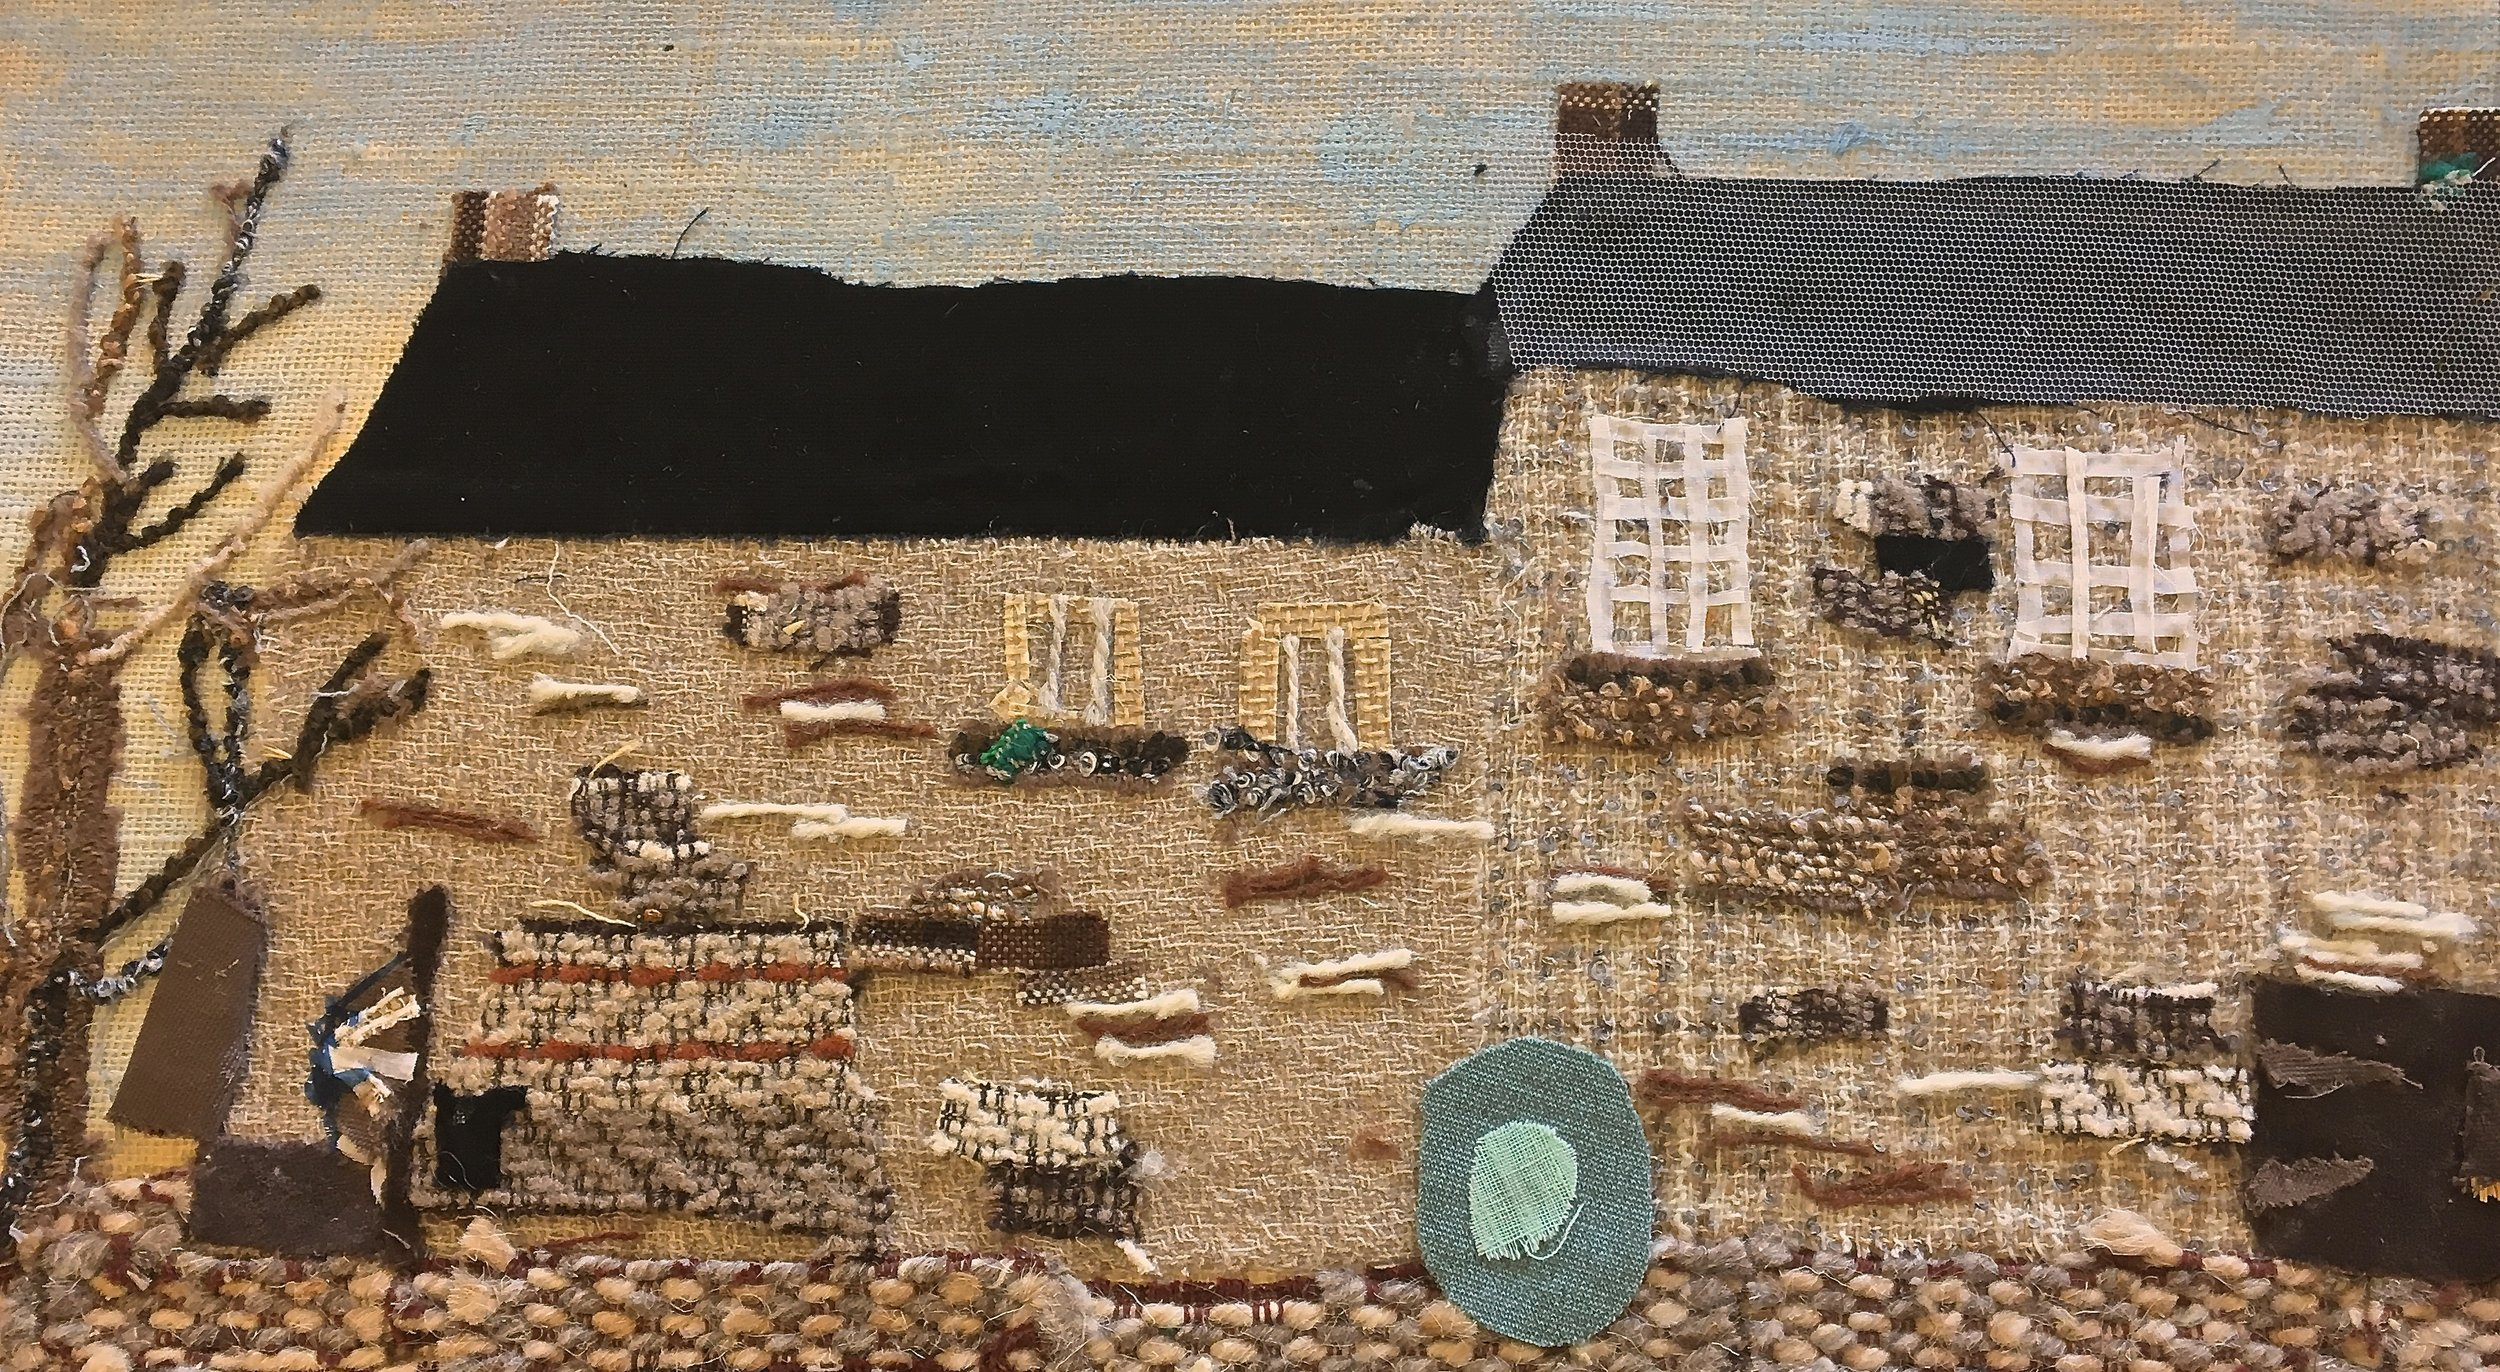 A collage of a West Riding of Yorkshire home, produced by a primary school pupil in the 1970s, and reproduced courtesy of the National Arts Education Archive.